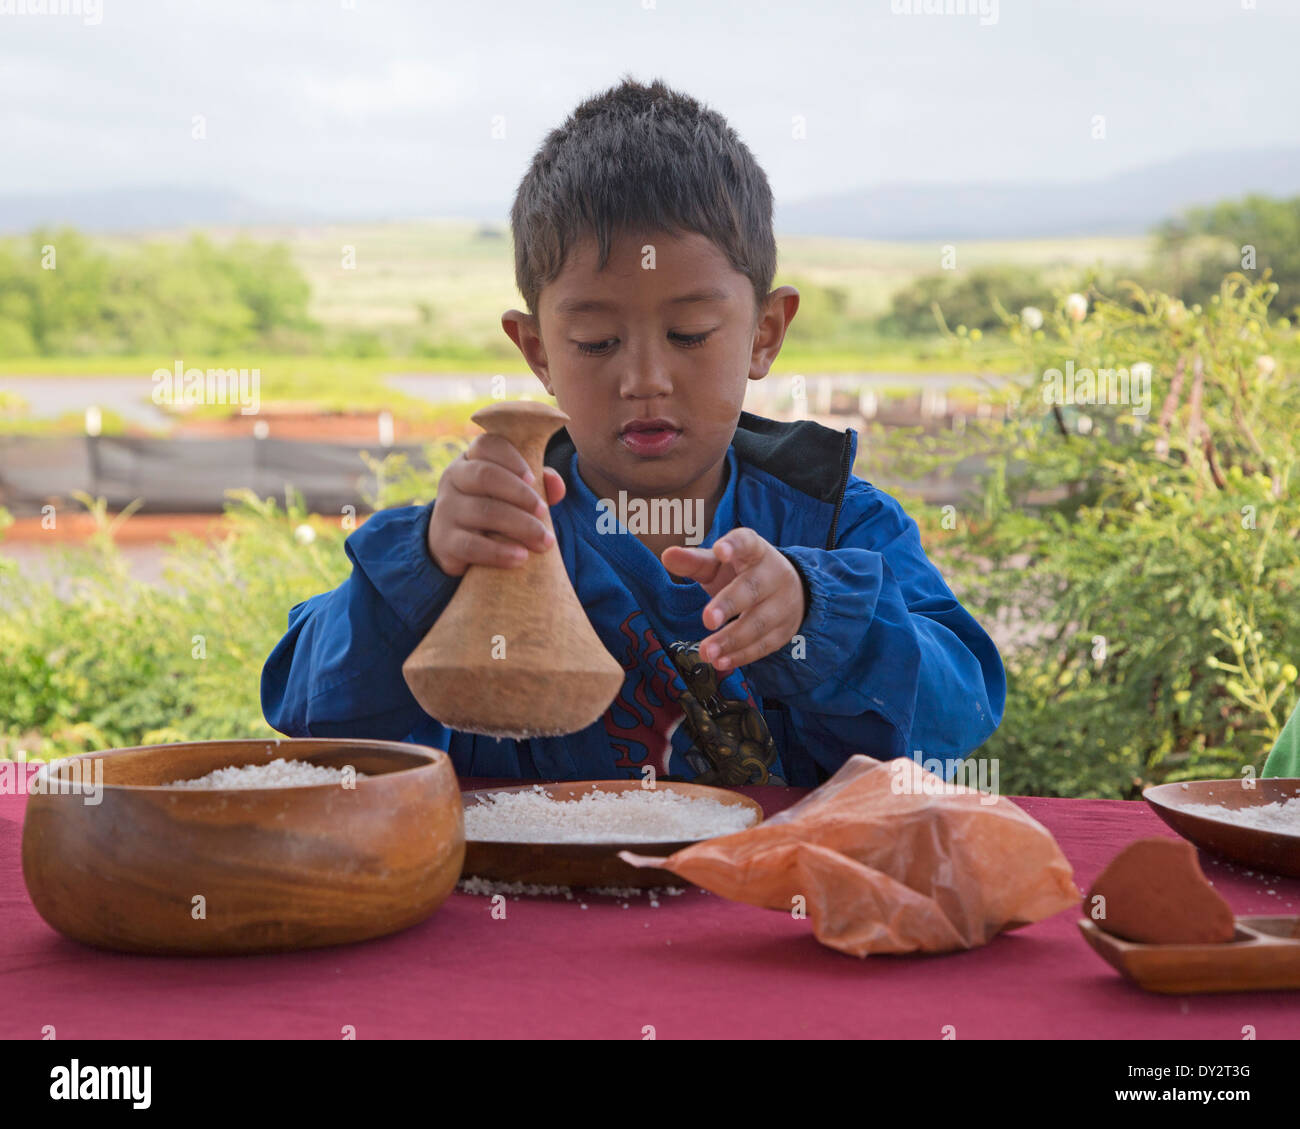 Boy pounding Alaea salt during with a mortar and pestle traditional Hawaiian sea salt making process - Stock Image